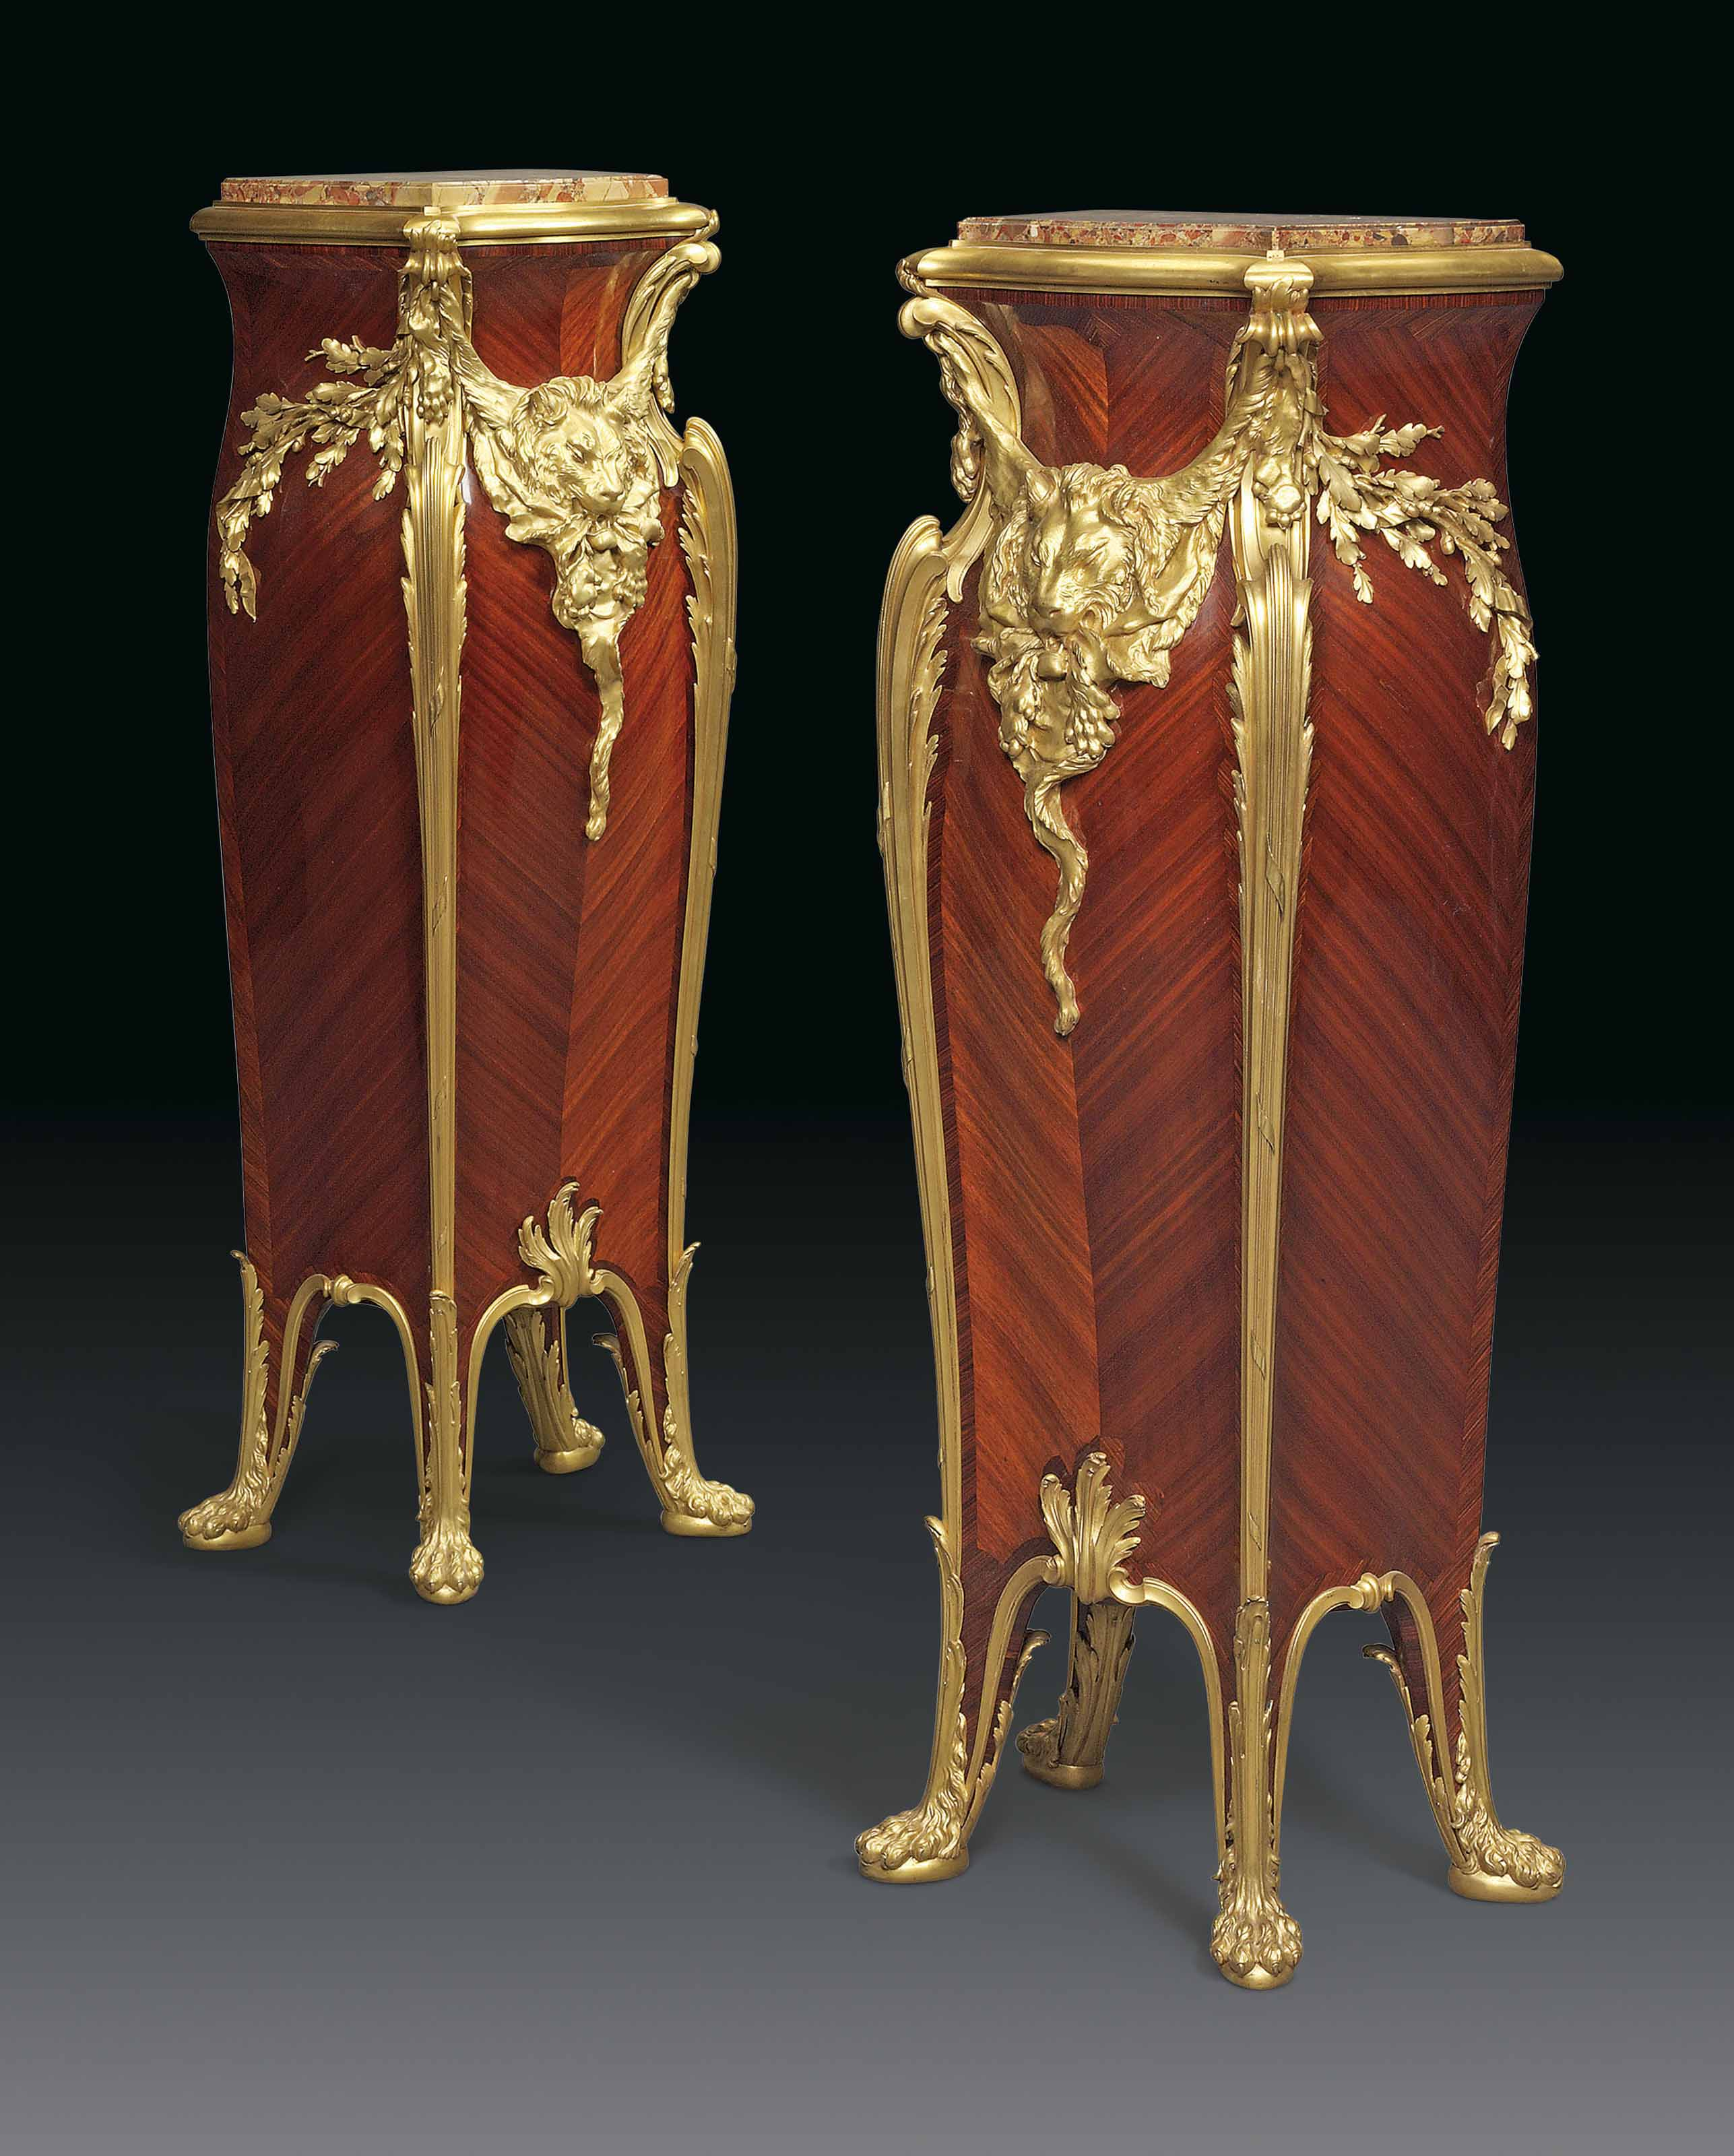 A PAIR OF FRENCH ORMOLU-MOUNTED MAHOGANY AND BOIS SATINE PEDESTALS